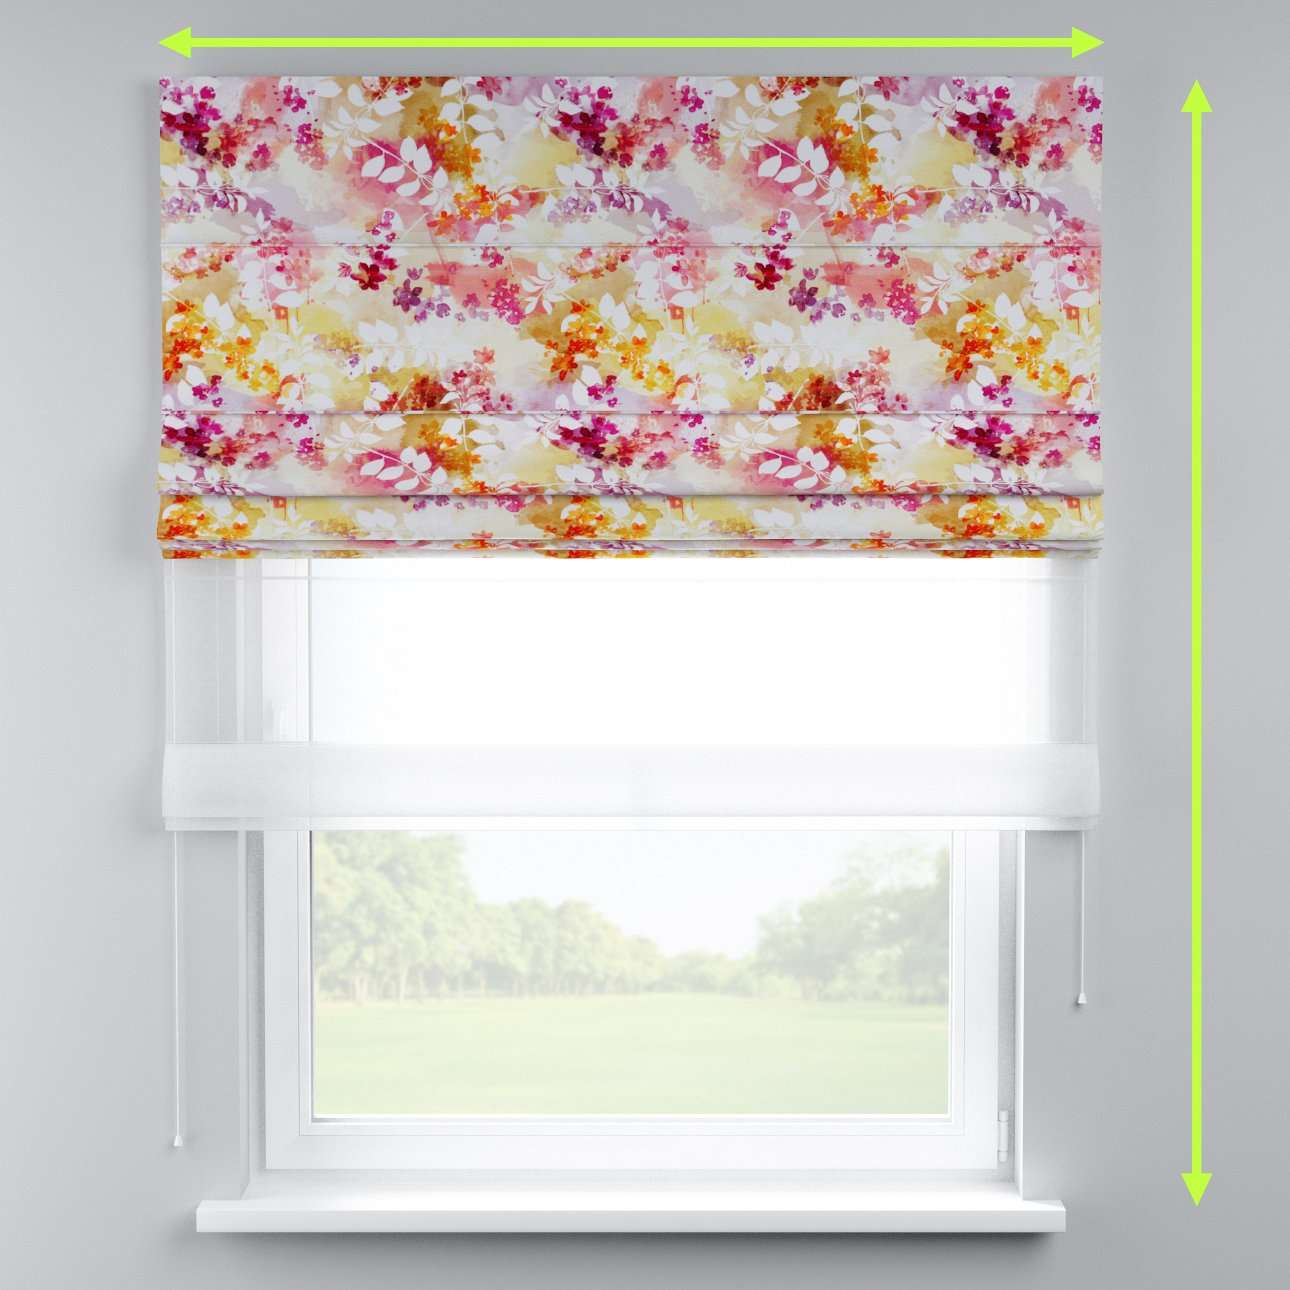 Voile and fabric roman blind (DUO II) in collection Monet, fabric: 140-05